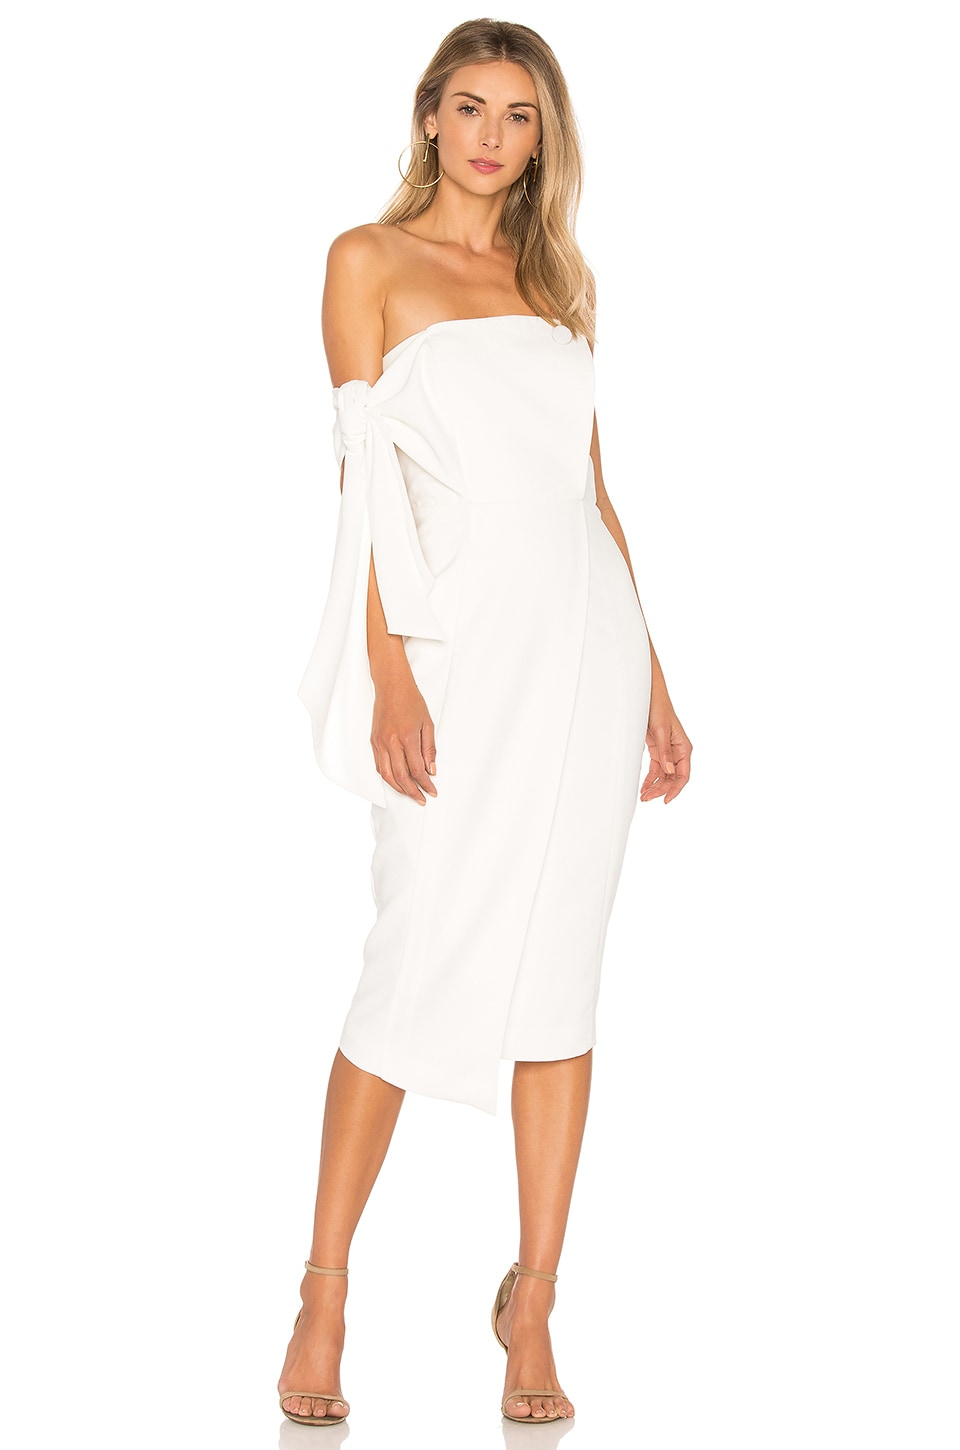 Misha Collection Romi Dress in Ivory